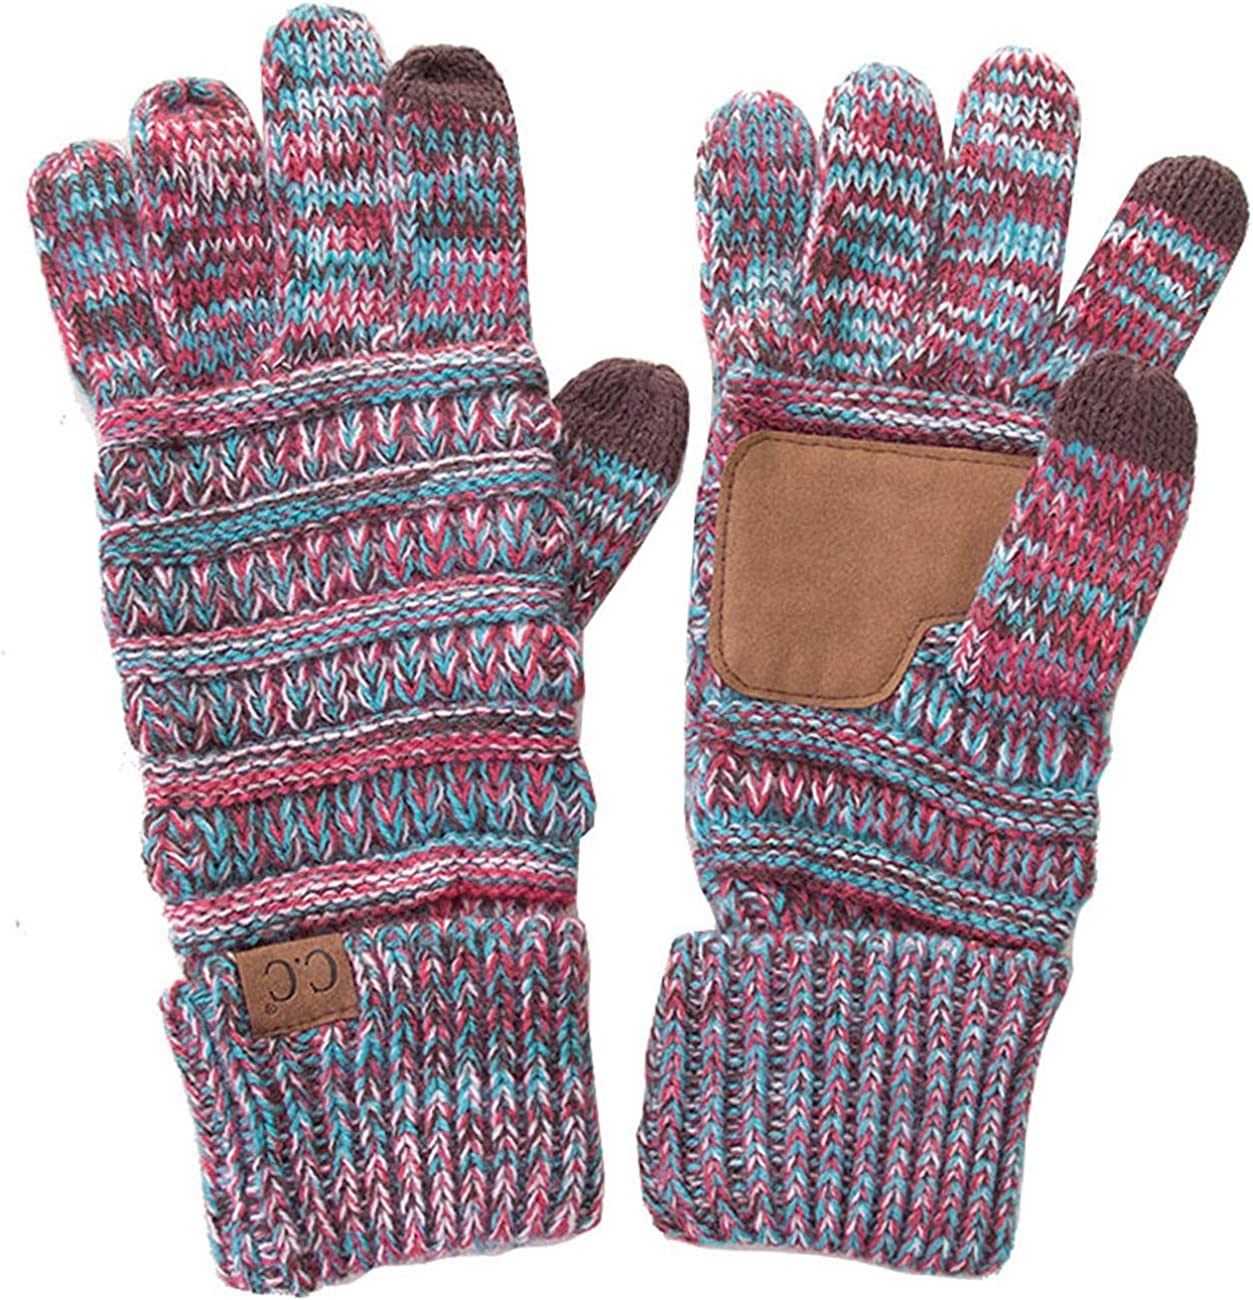 ScarvesMe Four Multi Tone Unisex Smart Touch Screen Texting Soft Knitted Solid Color Gloves